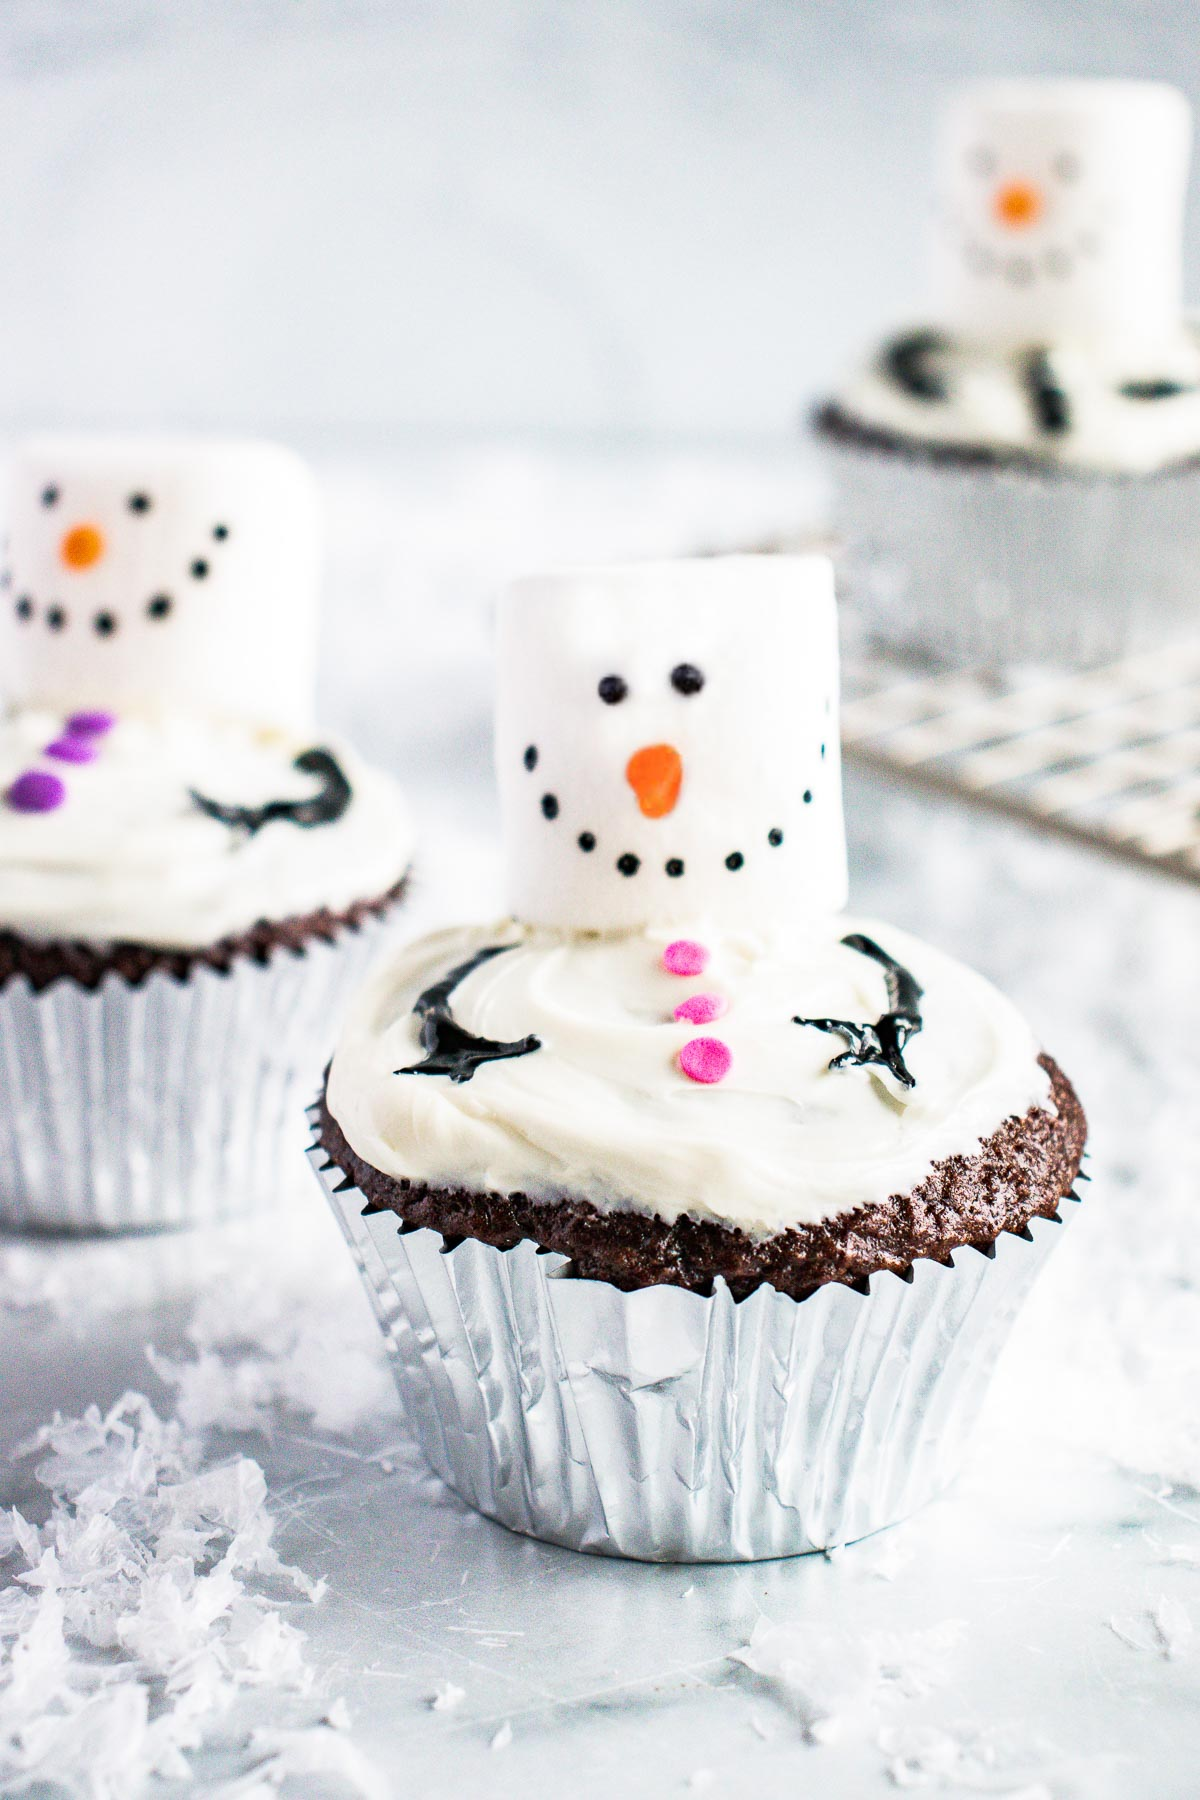 Snowman cupcakes on a marble countertop